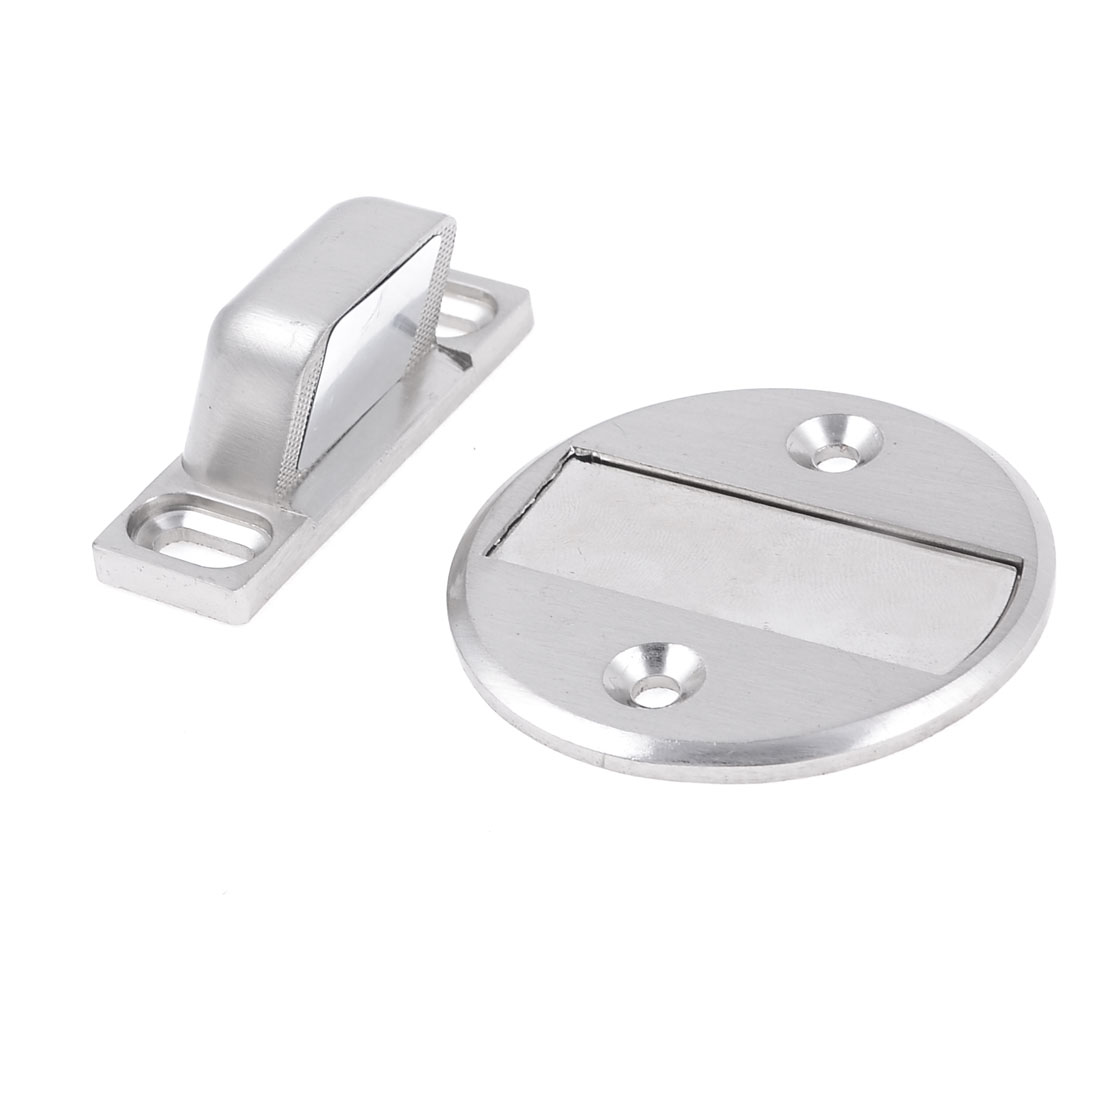 Household Silver Tone Door Stop Magnetic Holder Stopper w Screws